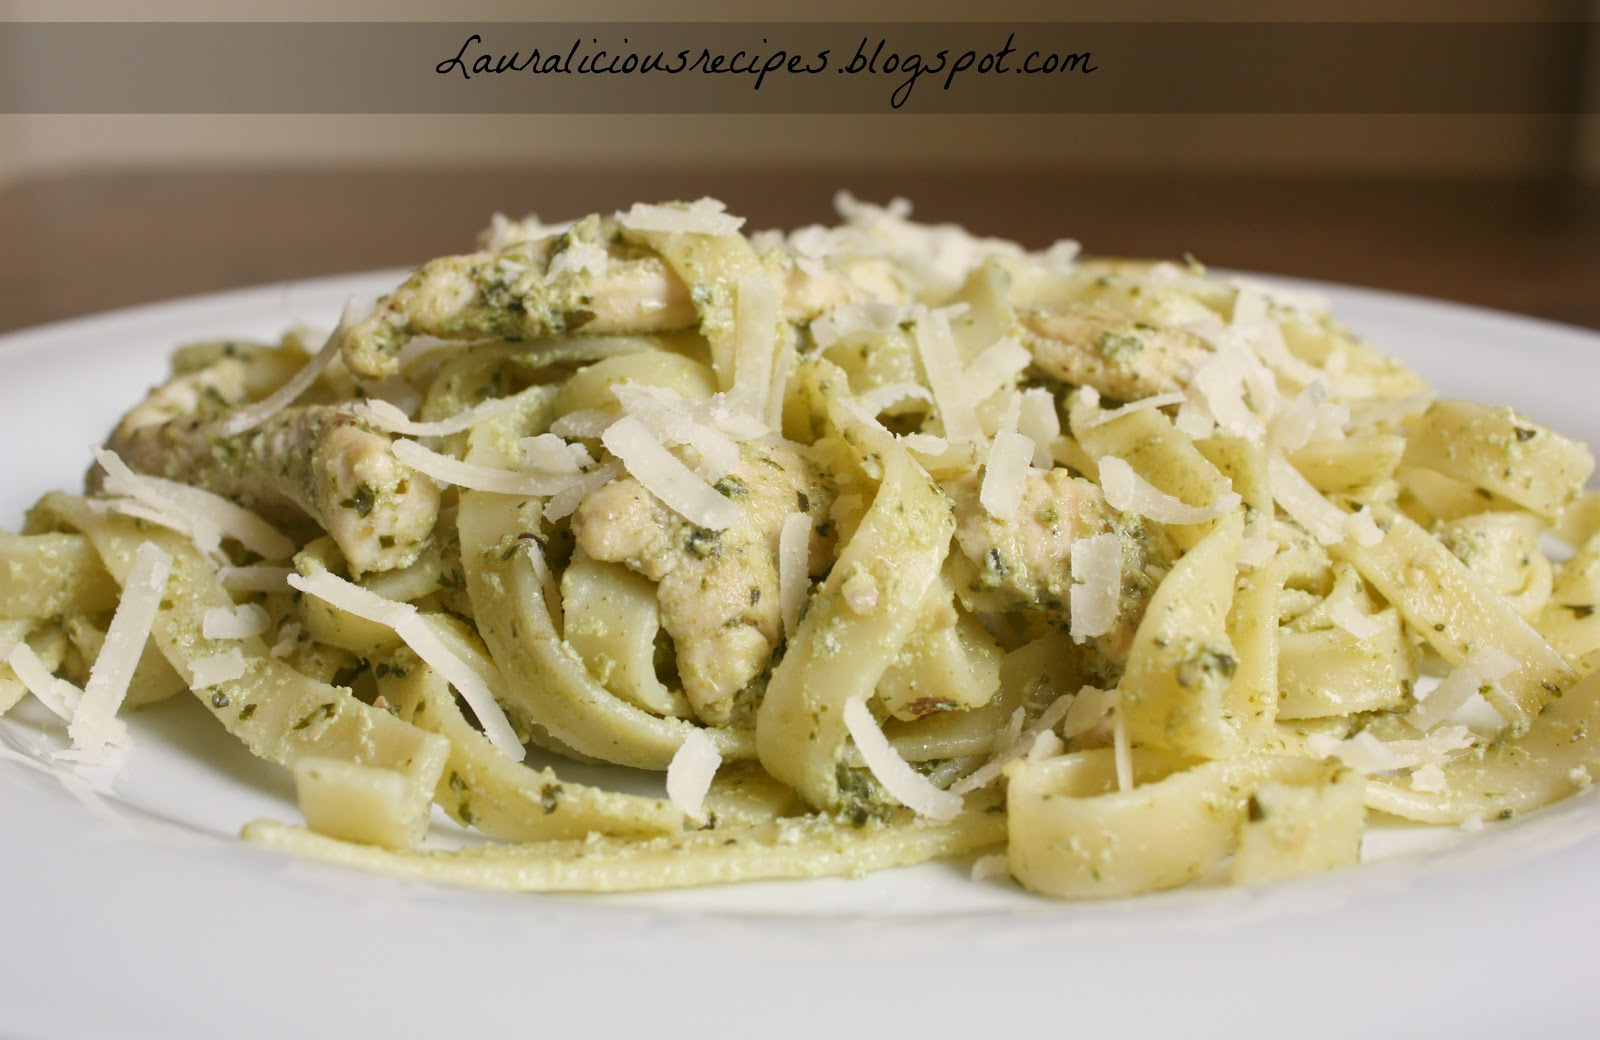 Lauralicious Recipes: Pasta pesto with ricotta and chicken